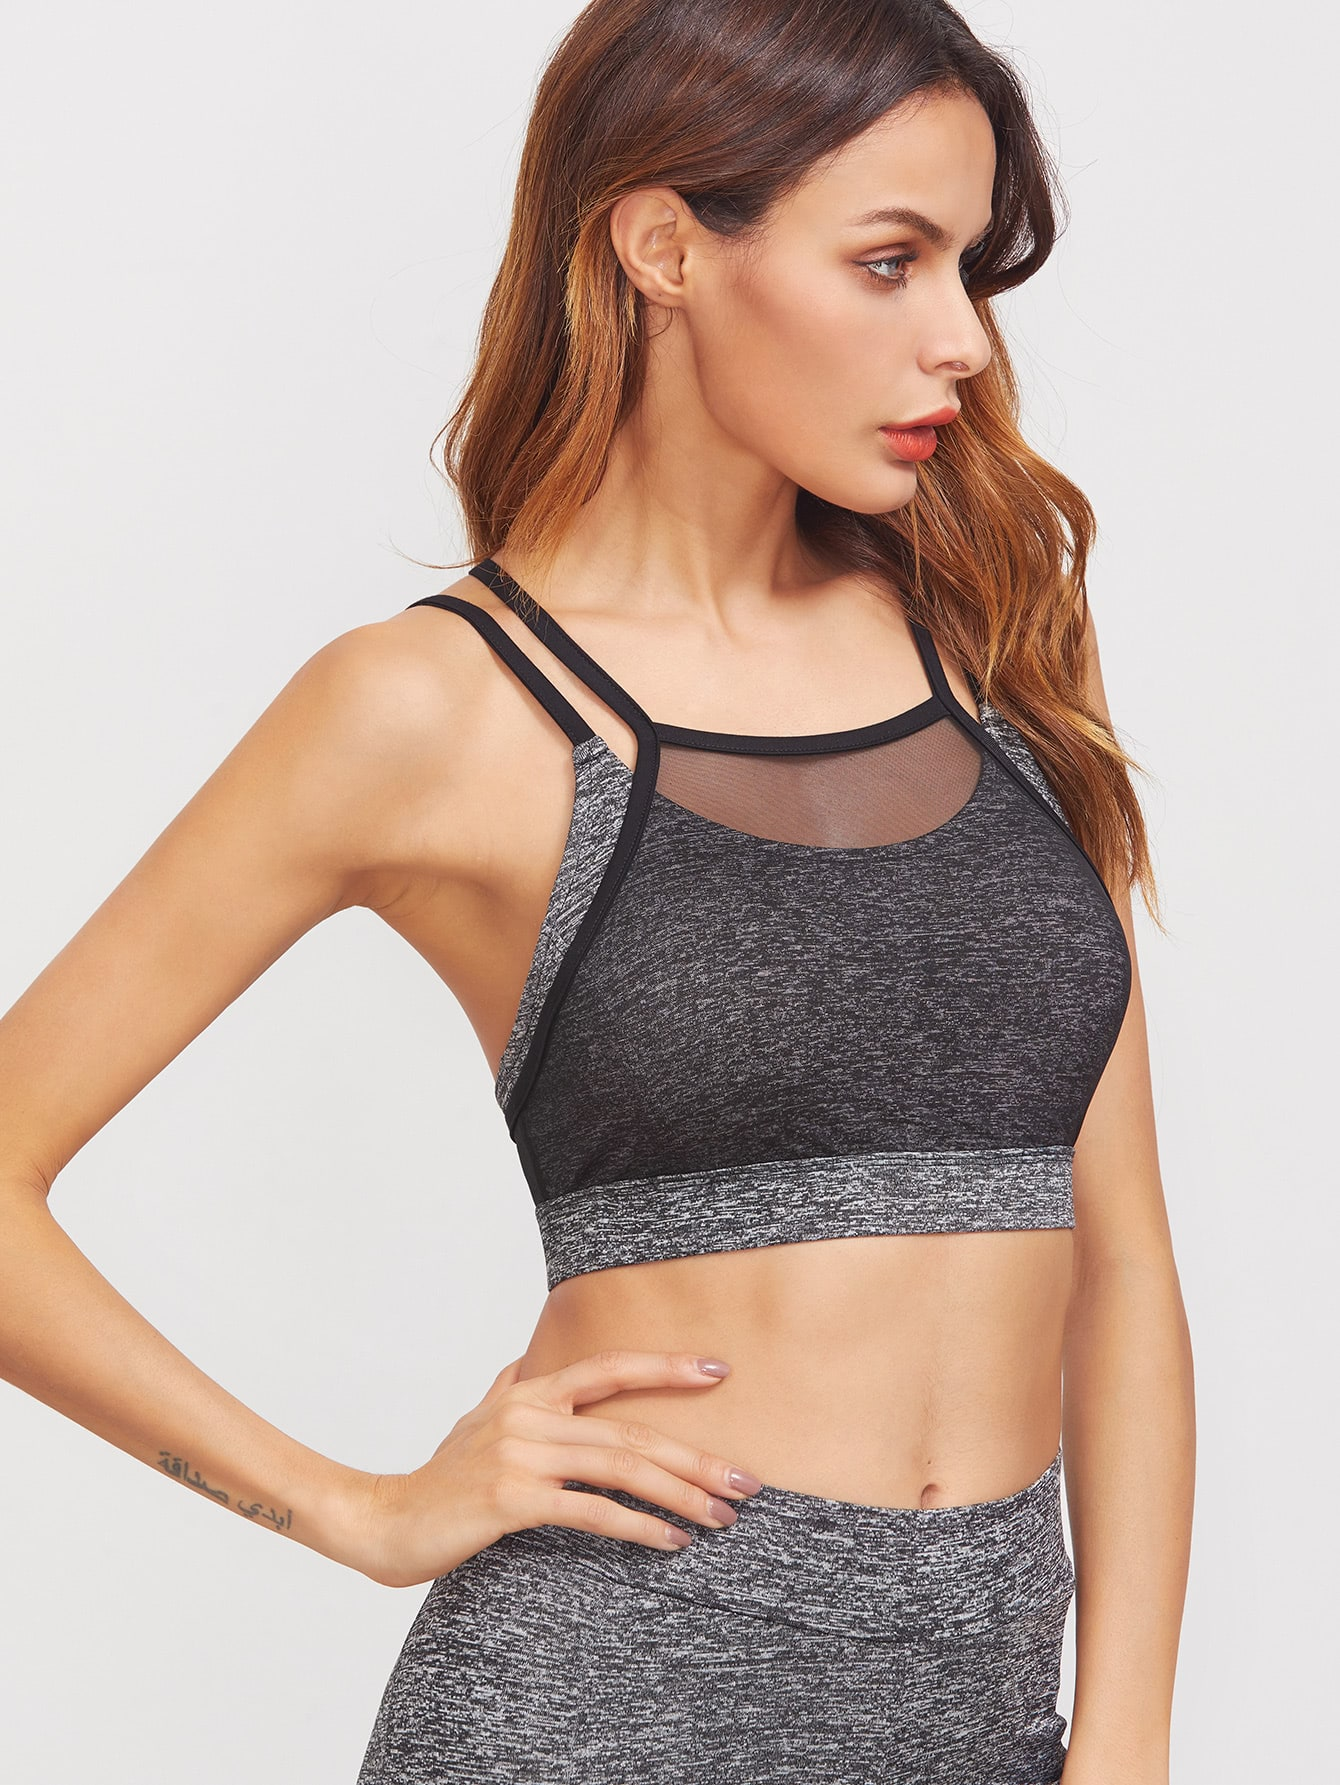 Grey Marled Knit Contrast Mesh Overlay Crisscross Back Sports Bra